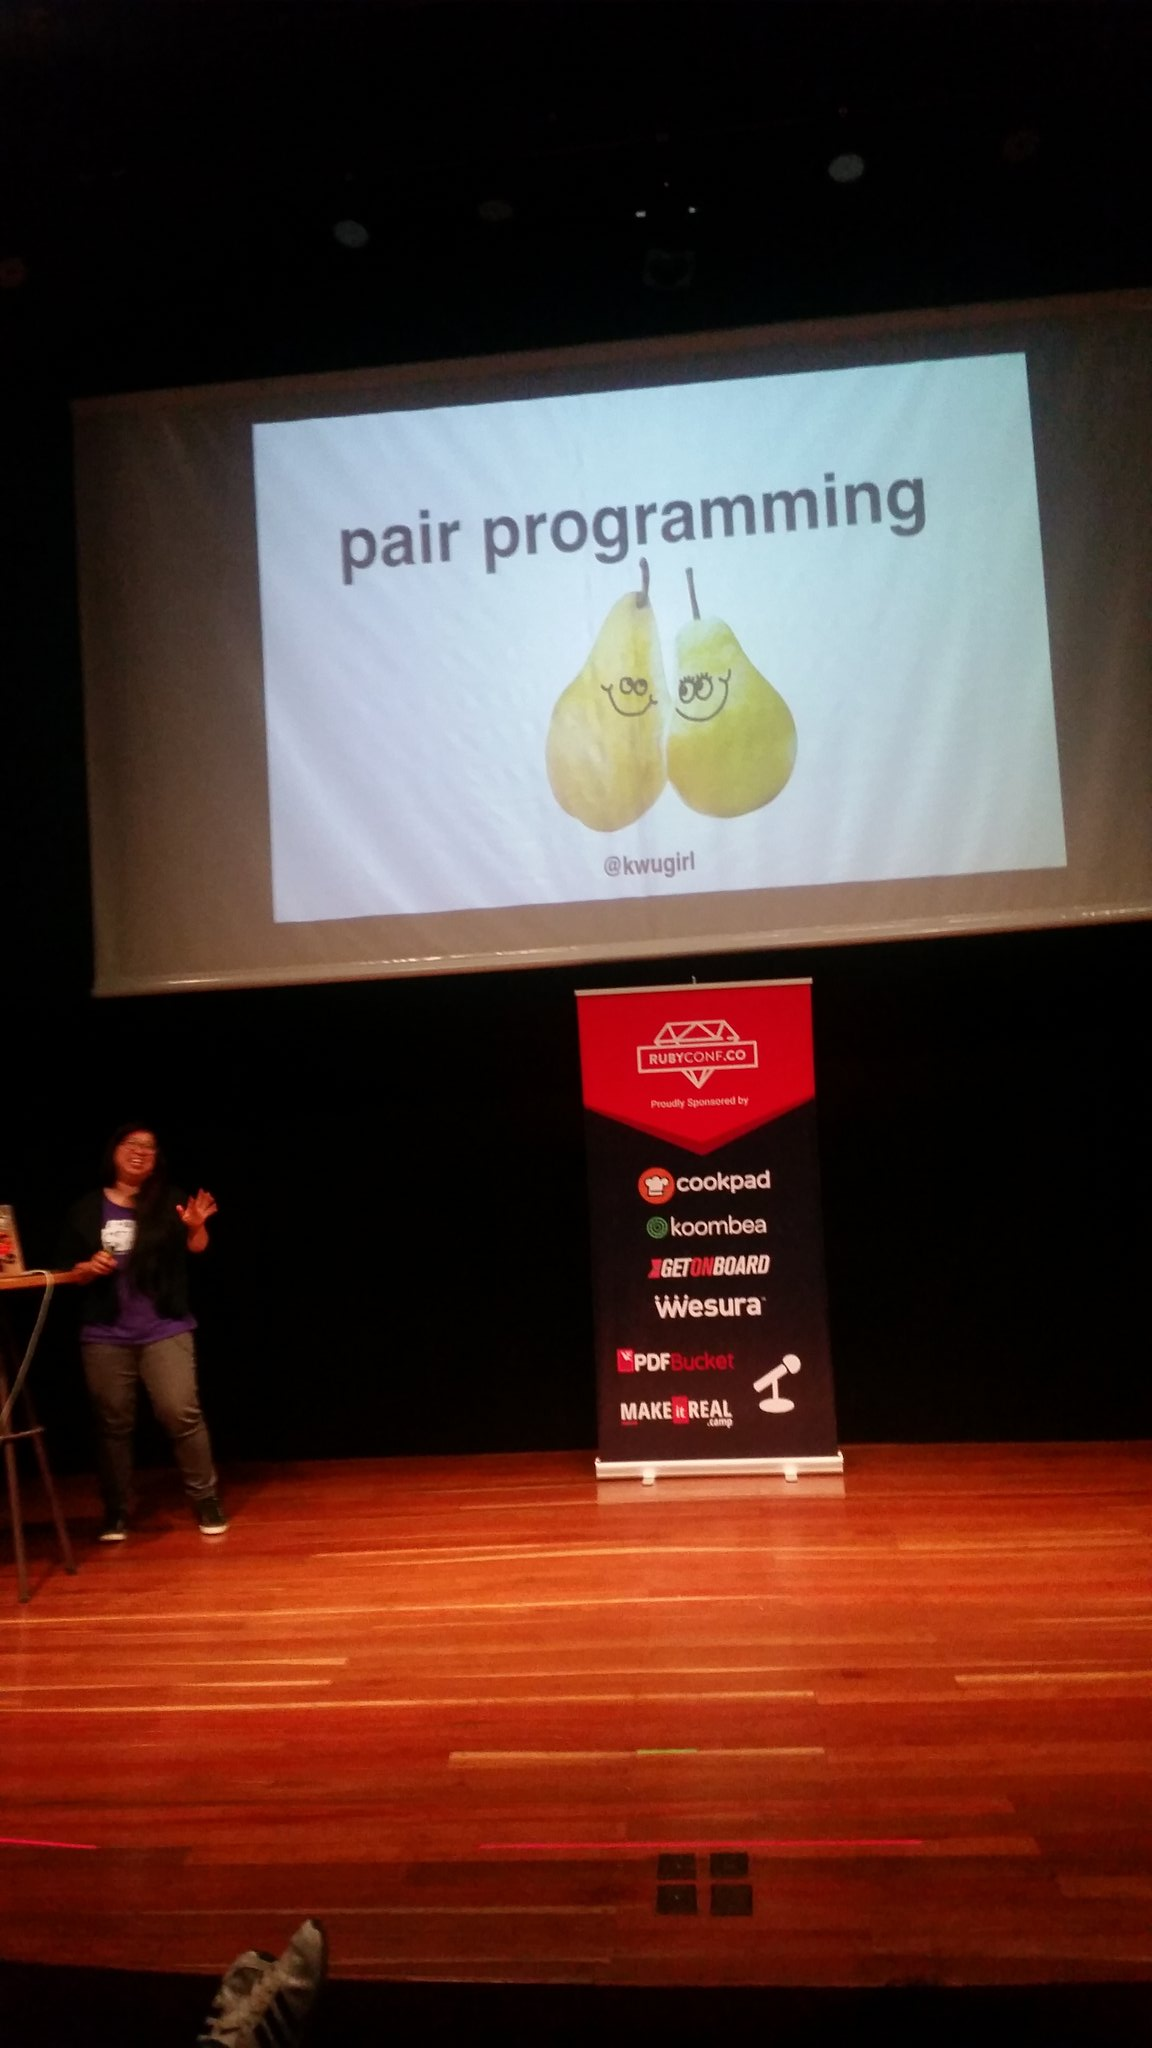 Awesome talk by @kwugirl about overcoming the fear of reading source code! Slides were on point too 👌🍐🍐 #RubyConfCo https://t.co/rgAuh6QxKX